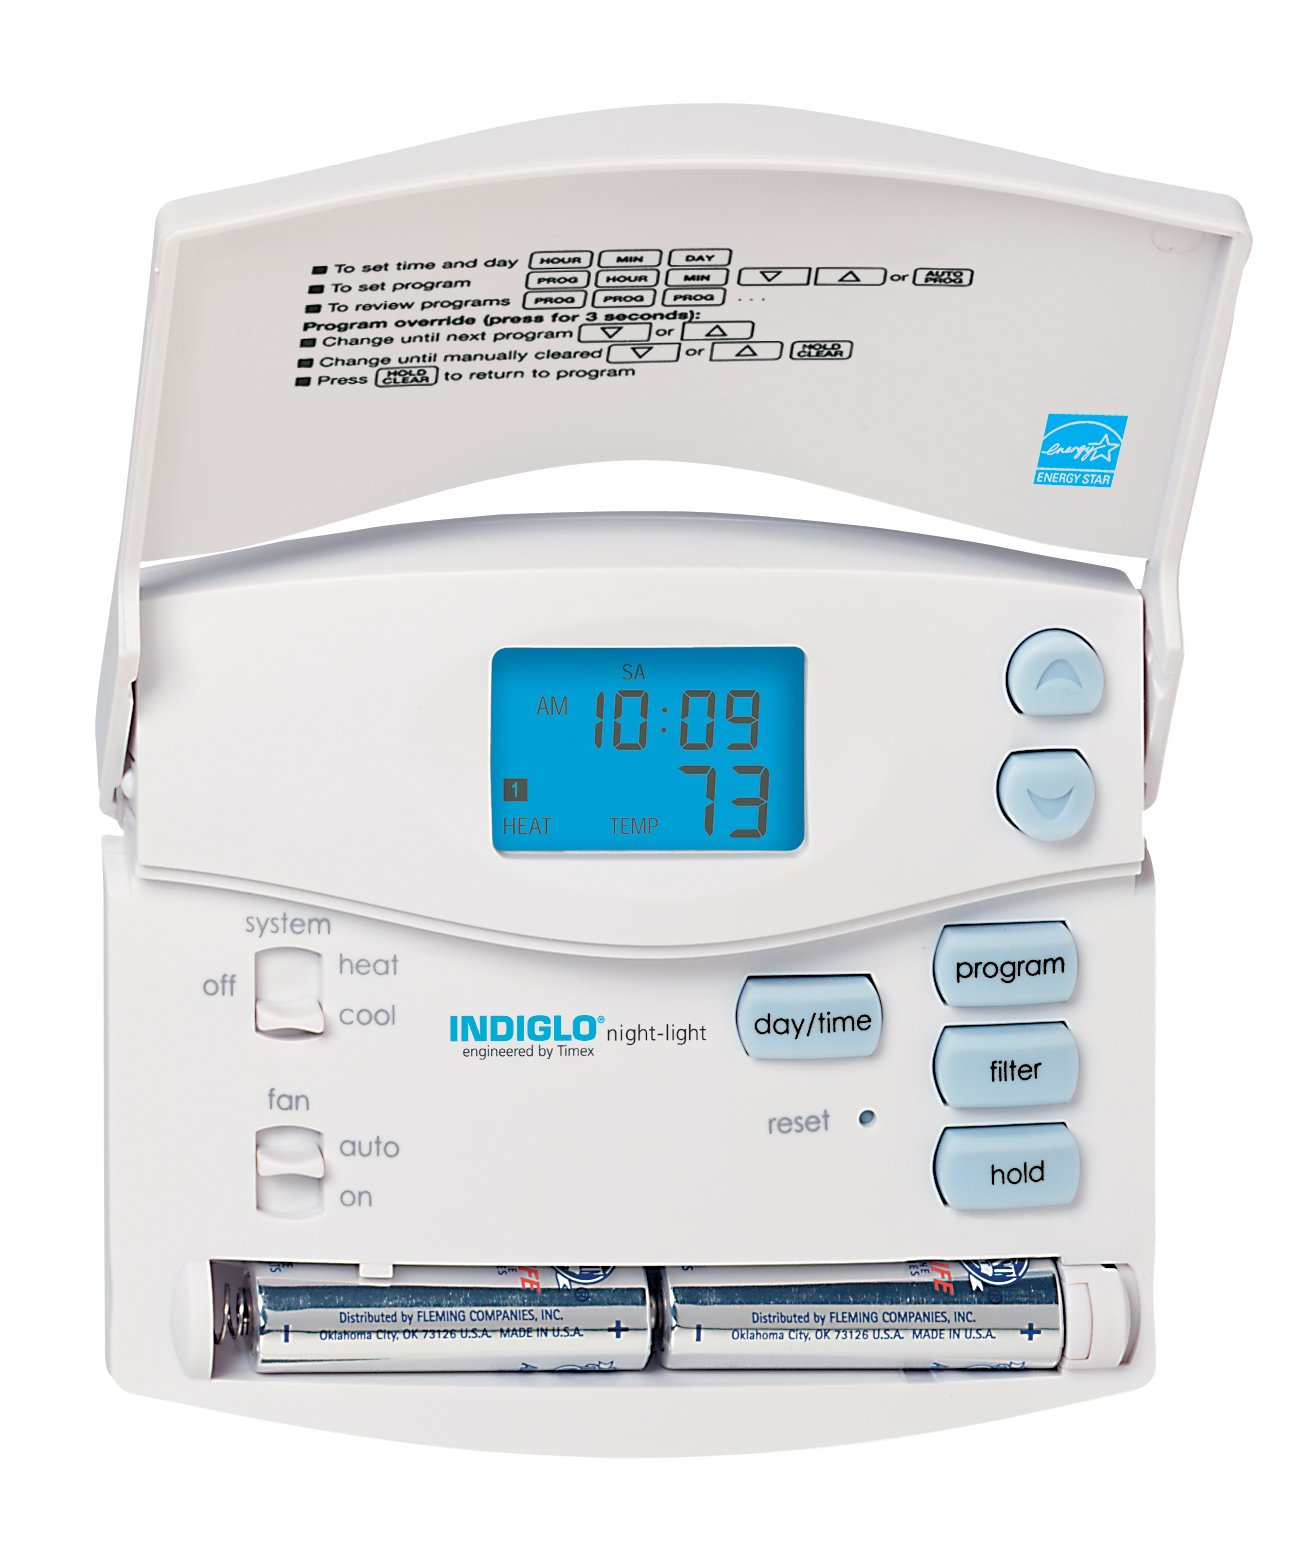 Hunter 44157-5/2-Day Digital Programmable Thermostat (Home Thermostat, AC, Heat)